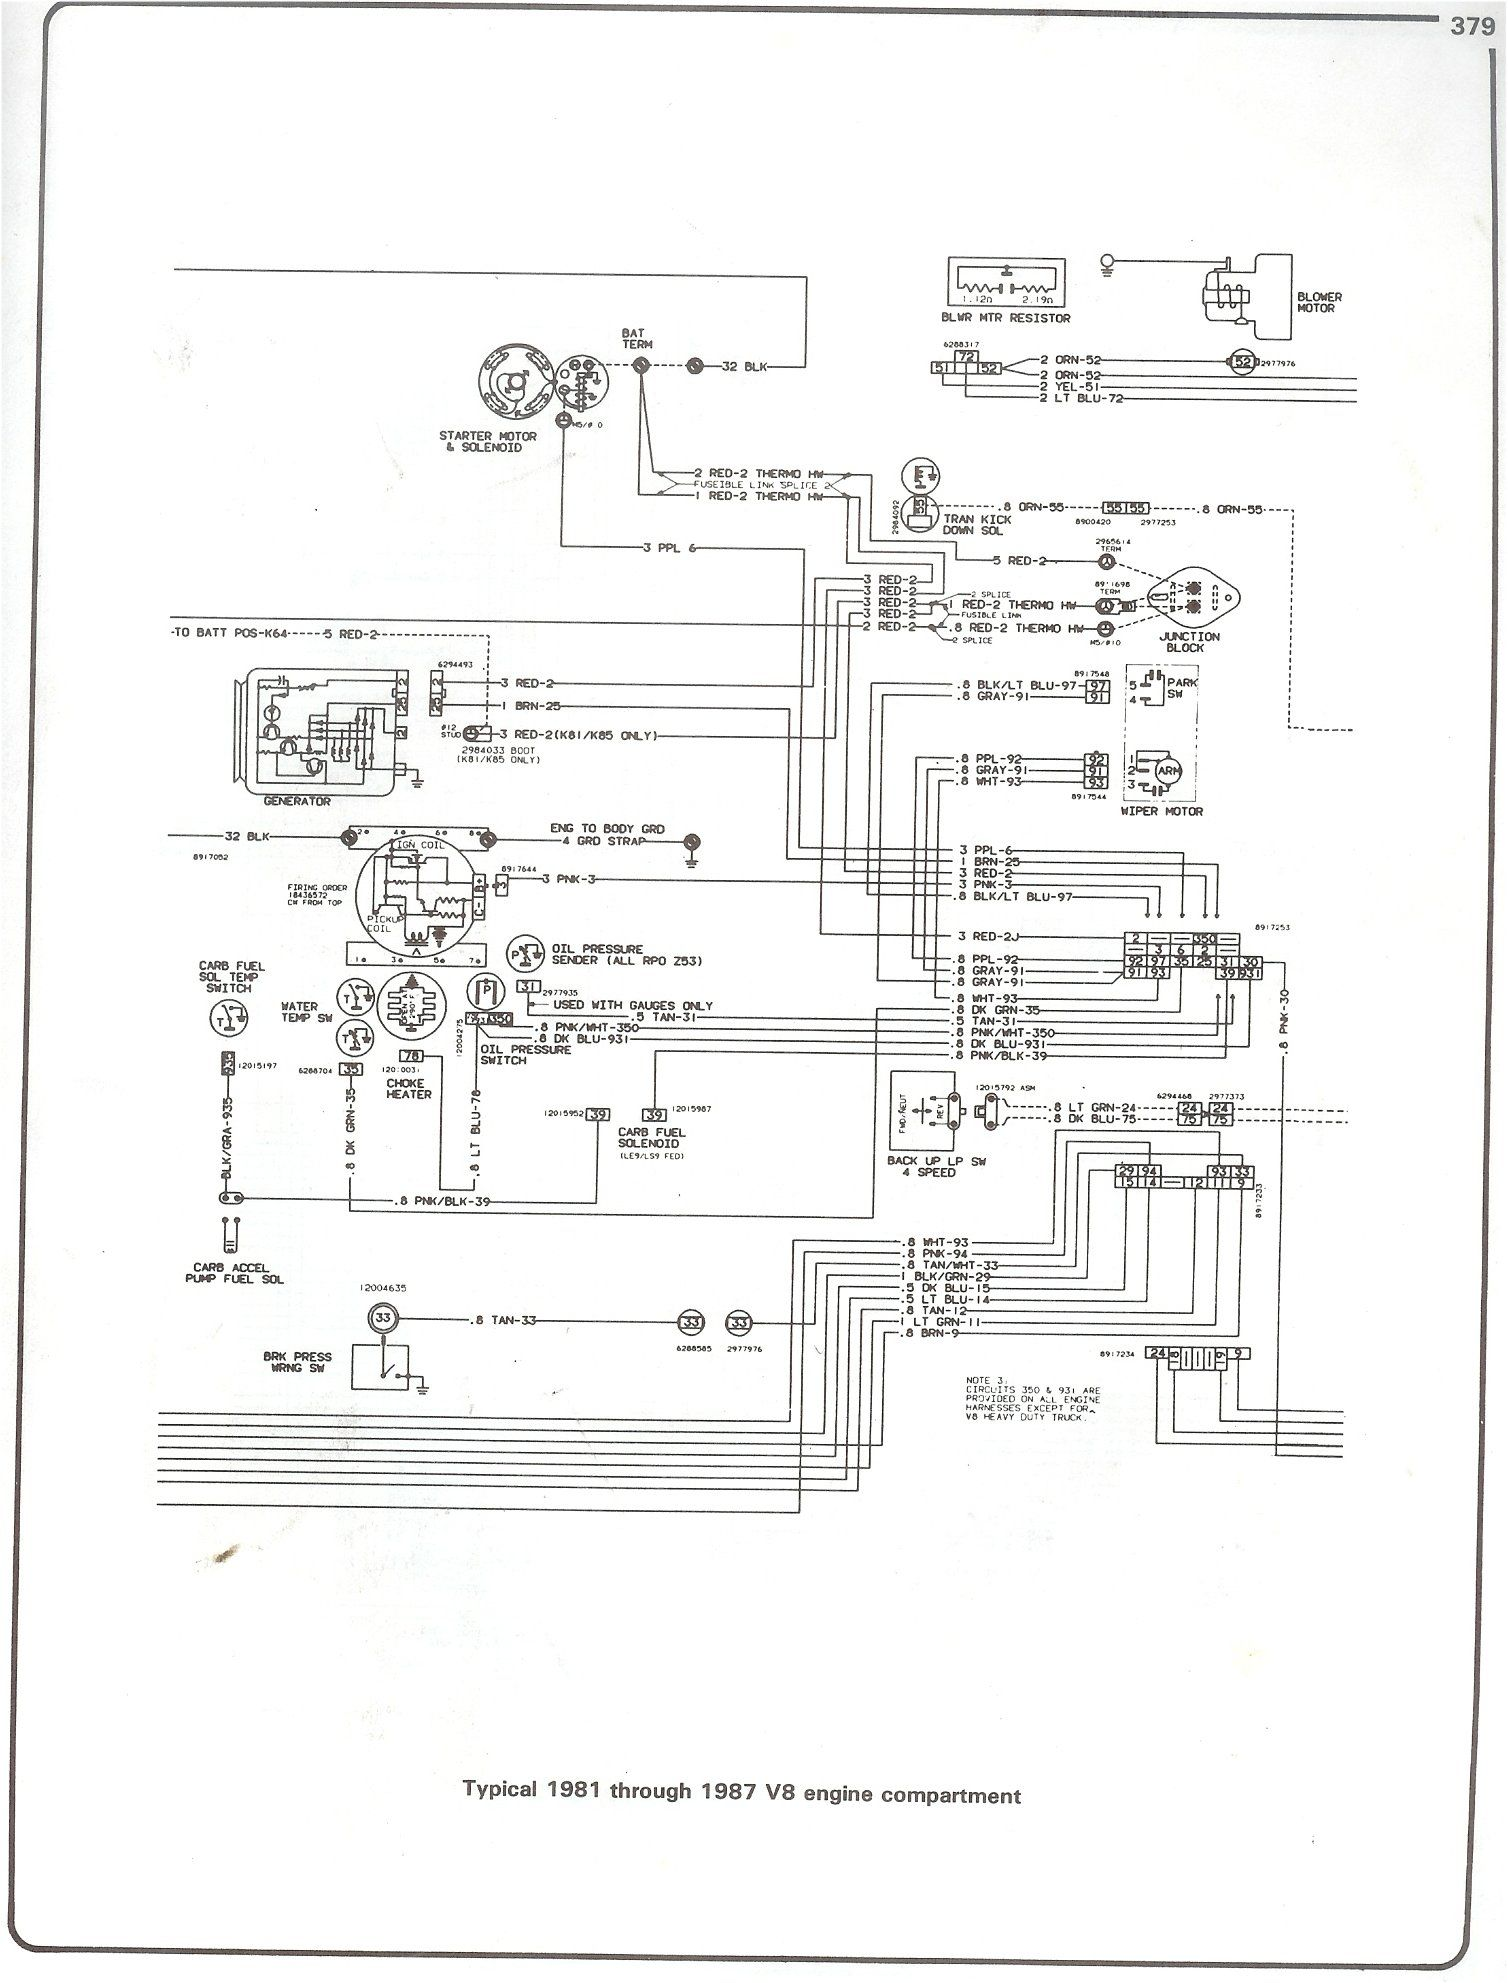 Pin By Malcolm Cail On Projects To Try Pinterest Trucks Gm Column Wiring Diagram Further Chevy Truck Steering 85 Http 73 87chevytrucks